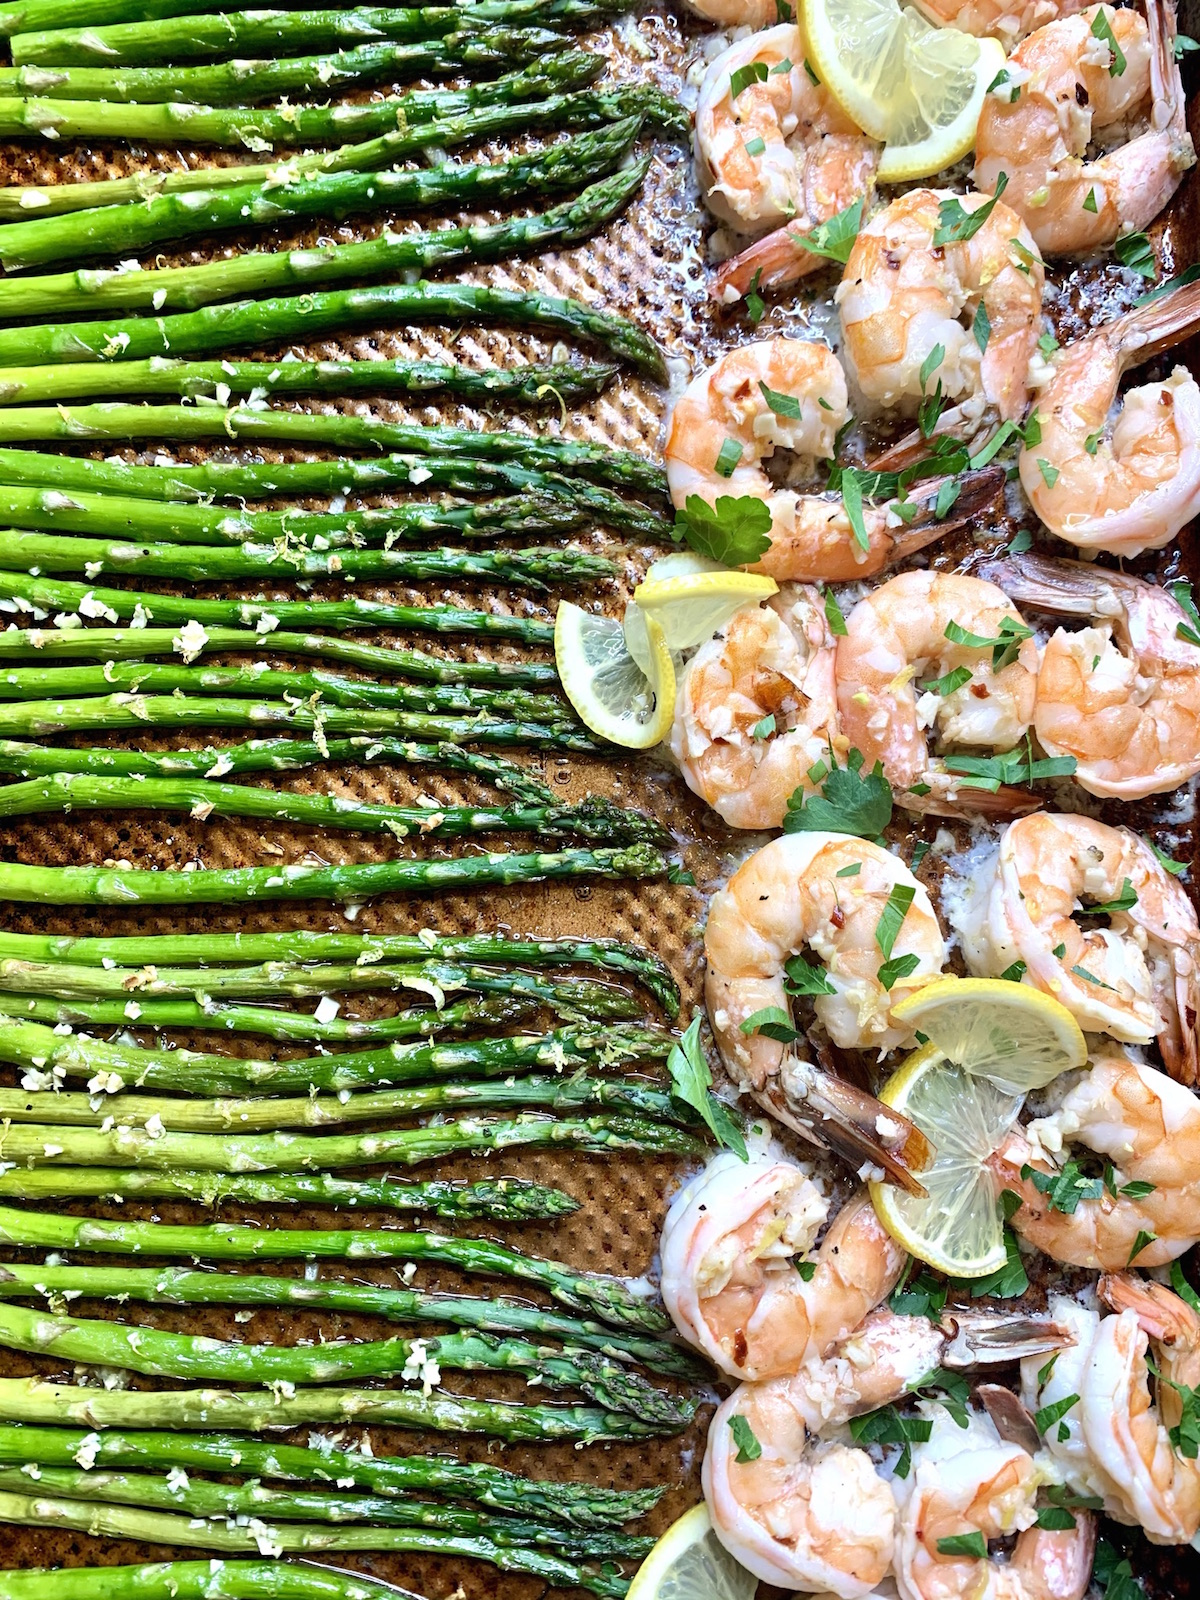 Asparagus and shrimp with lemon slices on a baking sheet